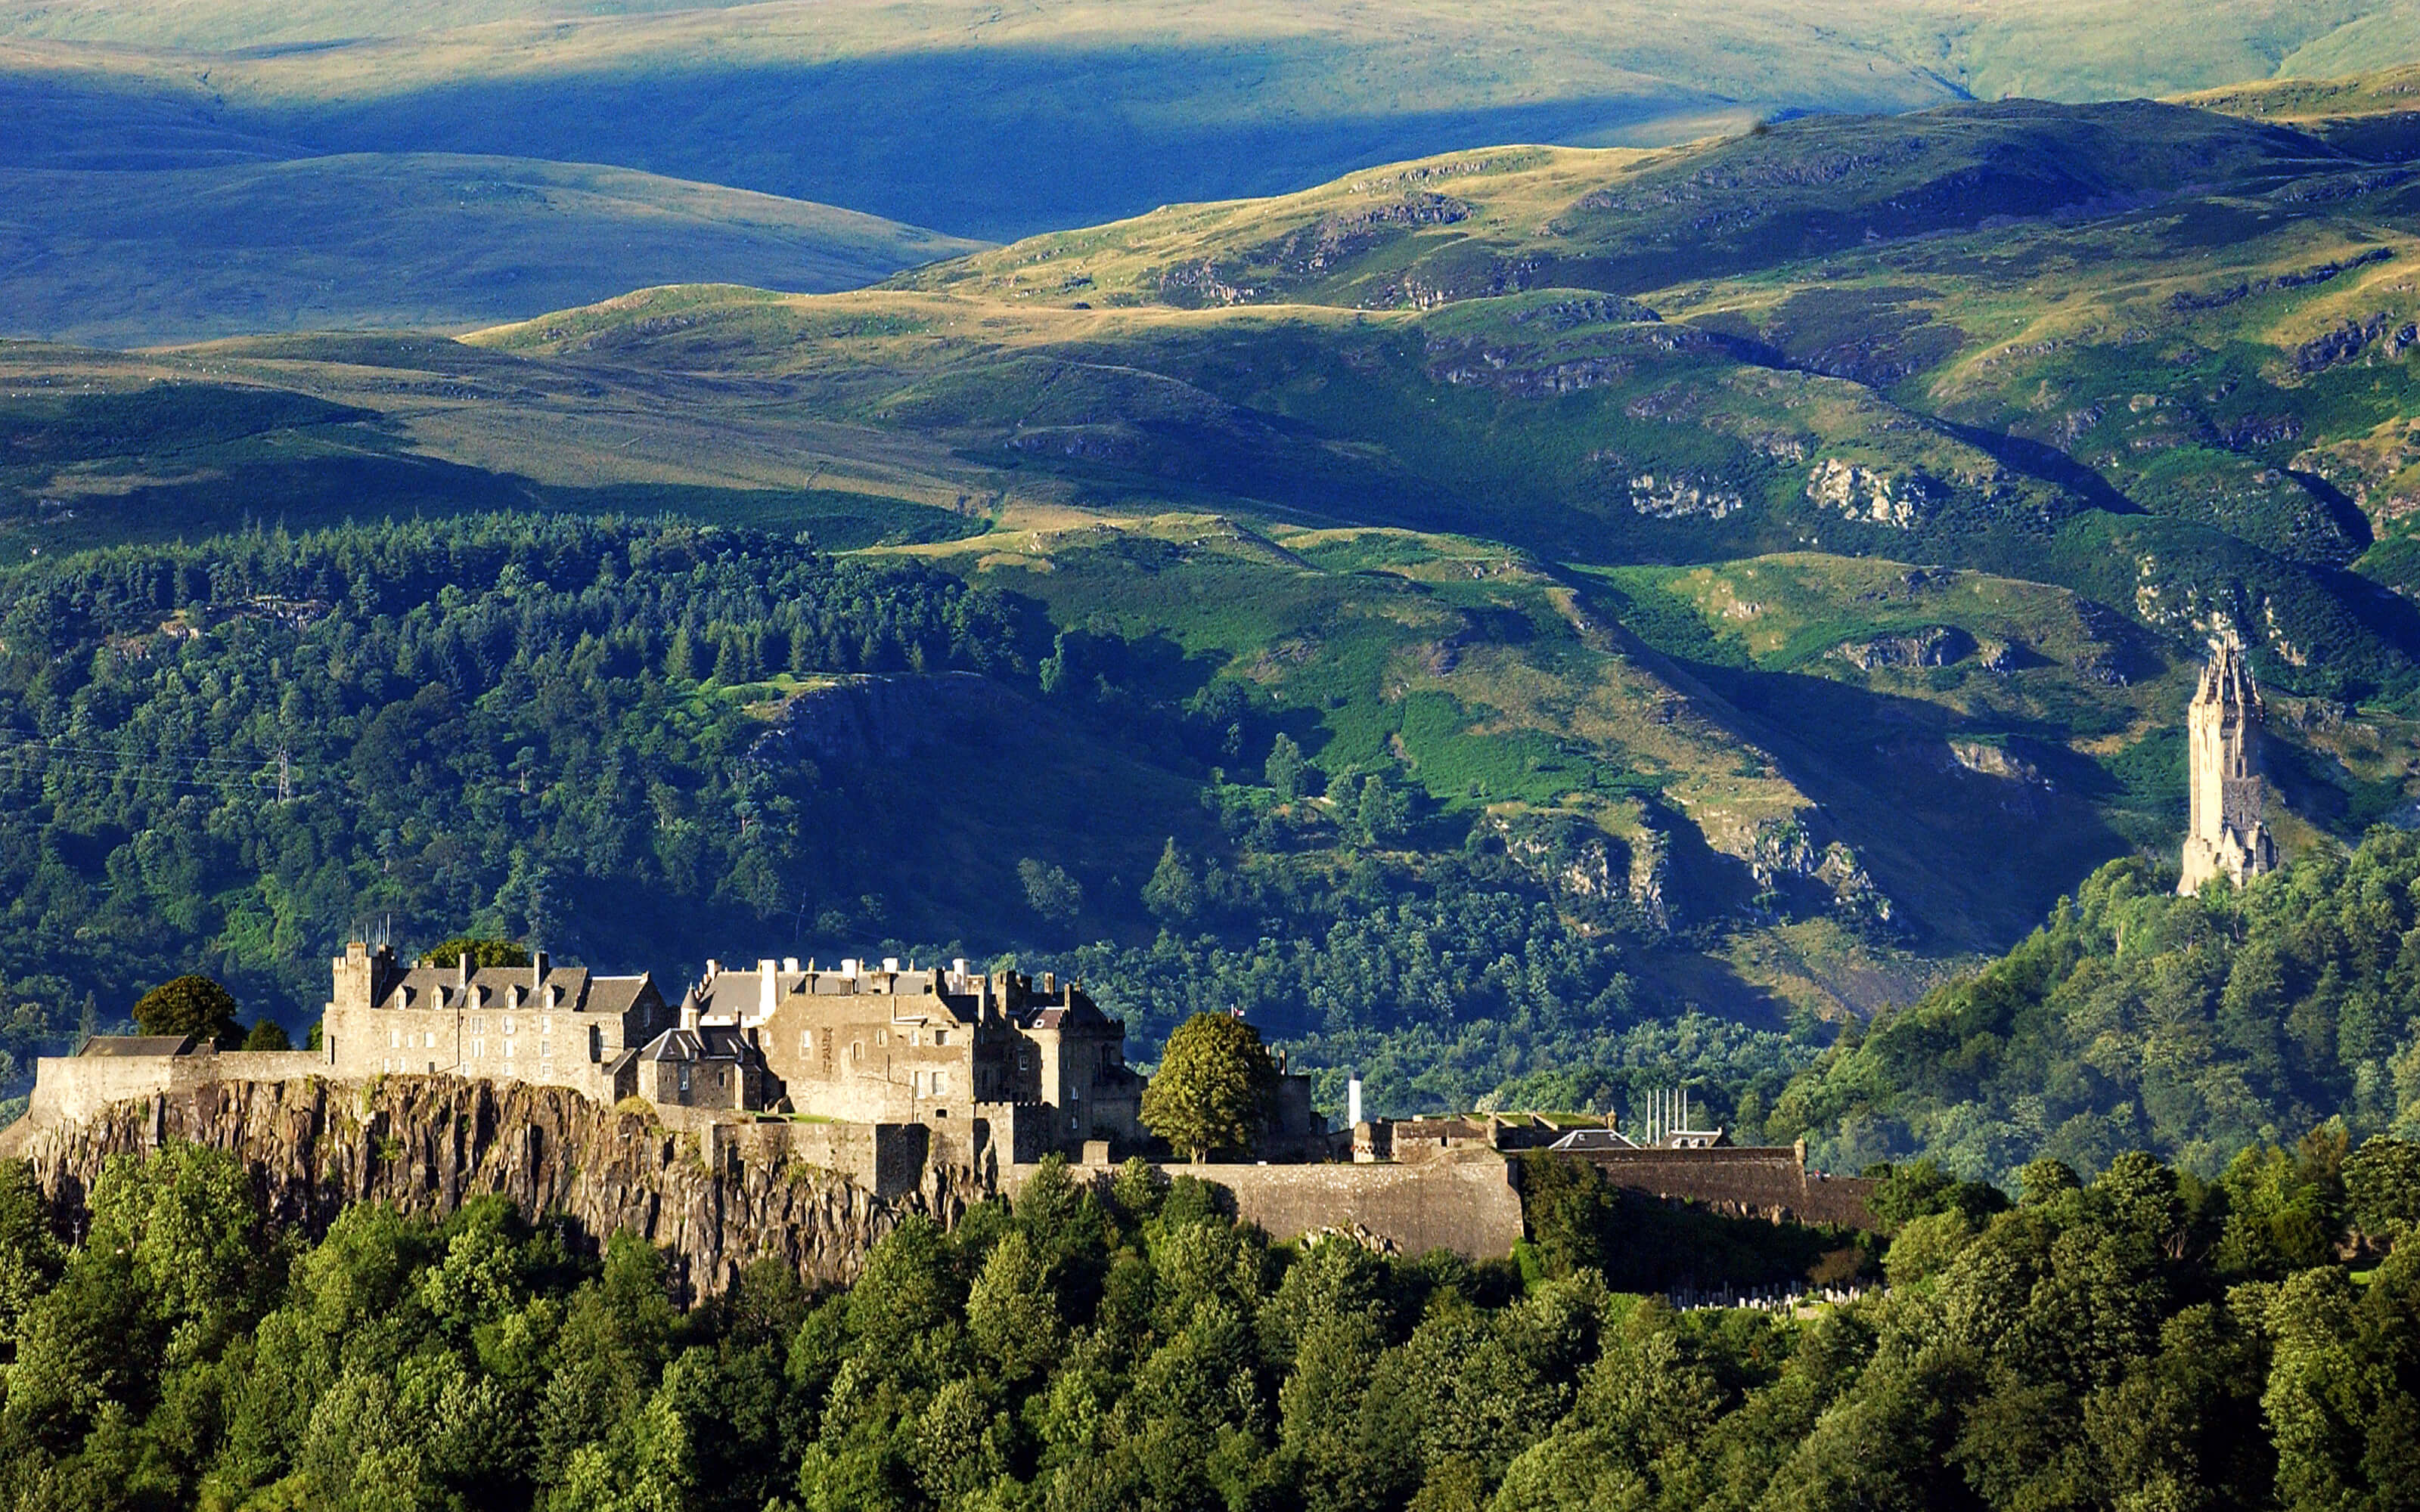 A dramatic photograph of Stirling Castle with the Wallace Monument.